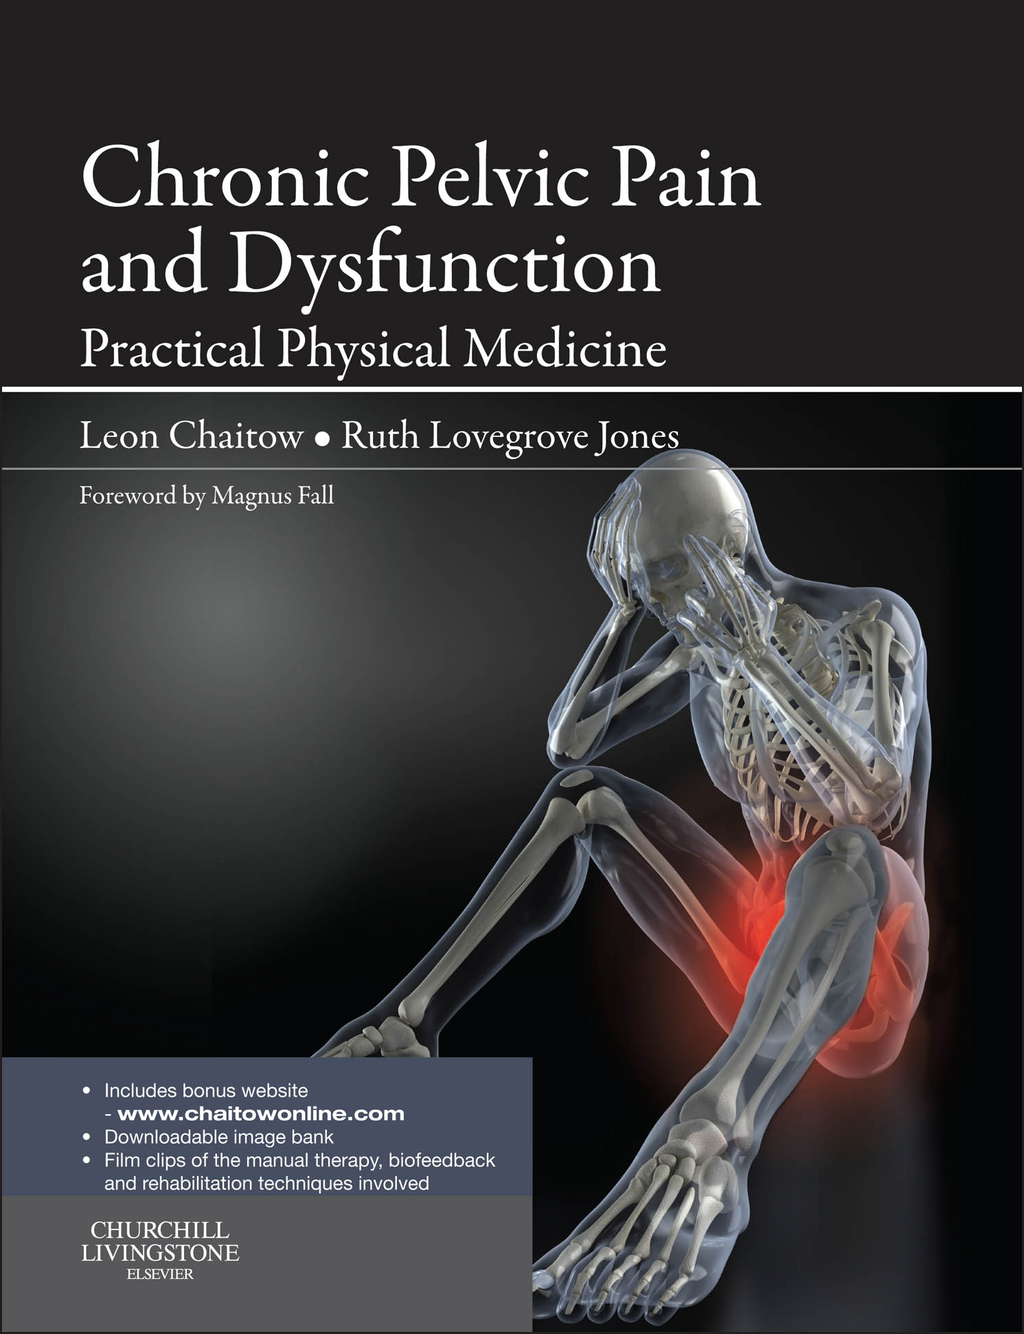 Chronic Pelvic Pain and Dysfunction Practical Physical Medicine